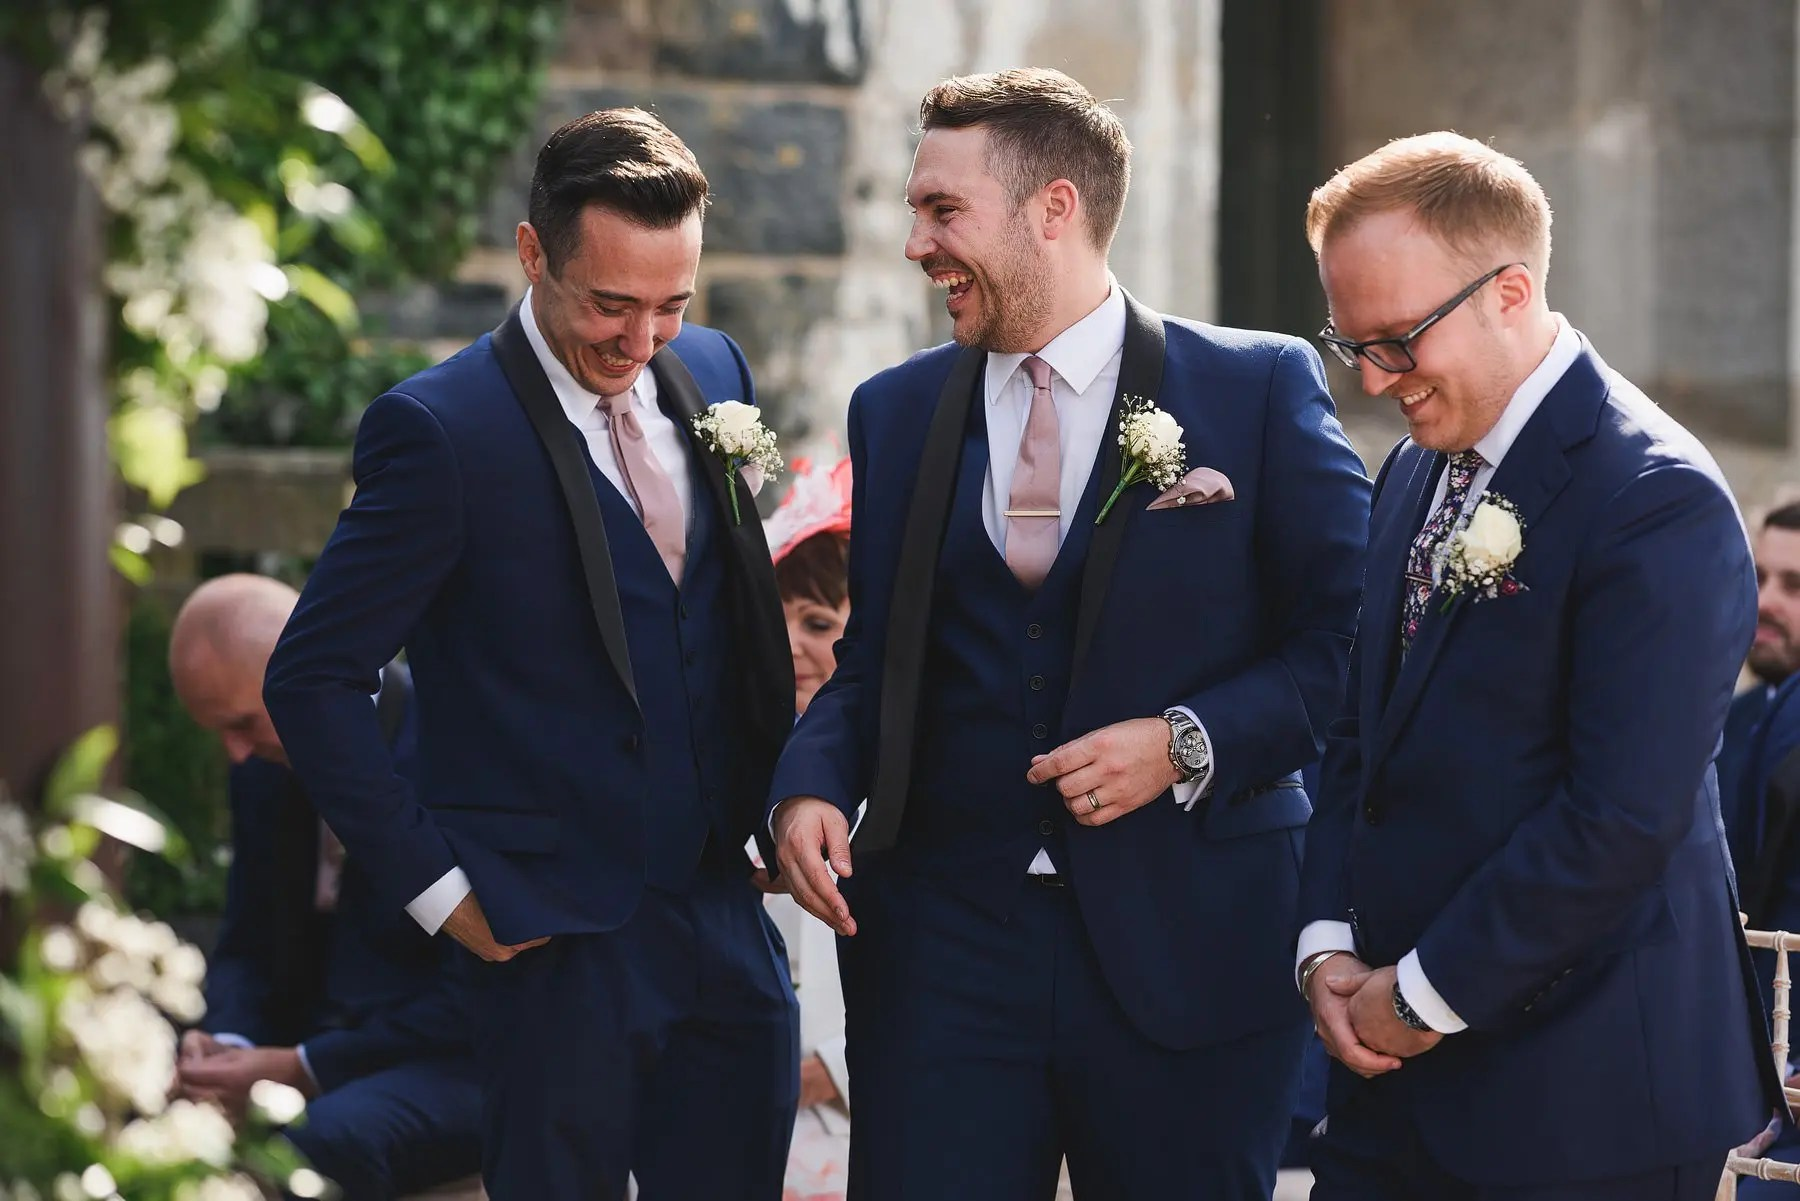 groomsmen laughing before the wedding ceremony